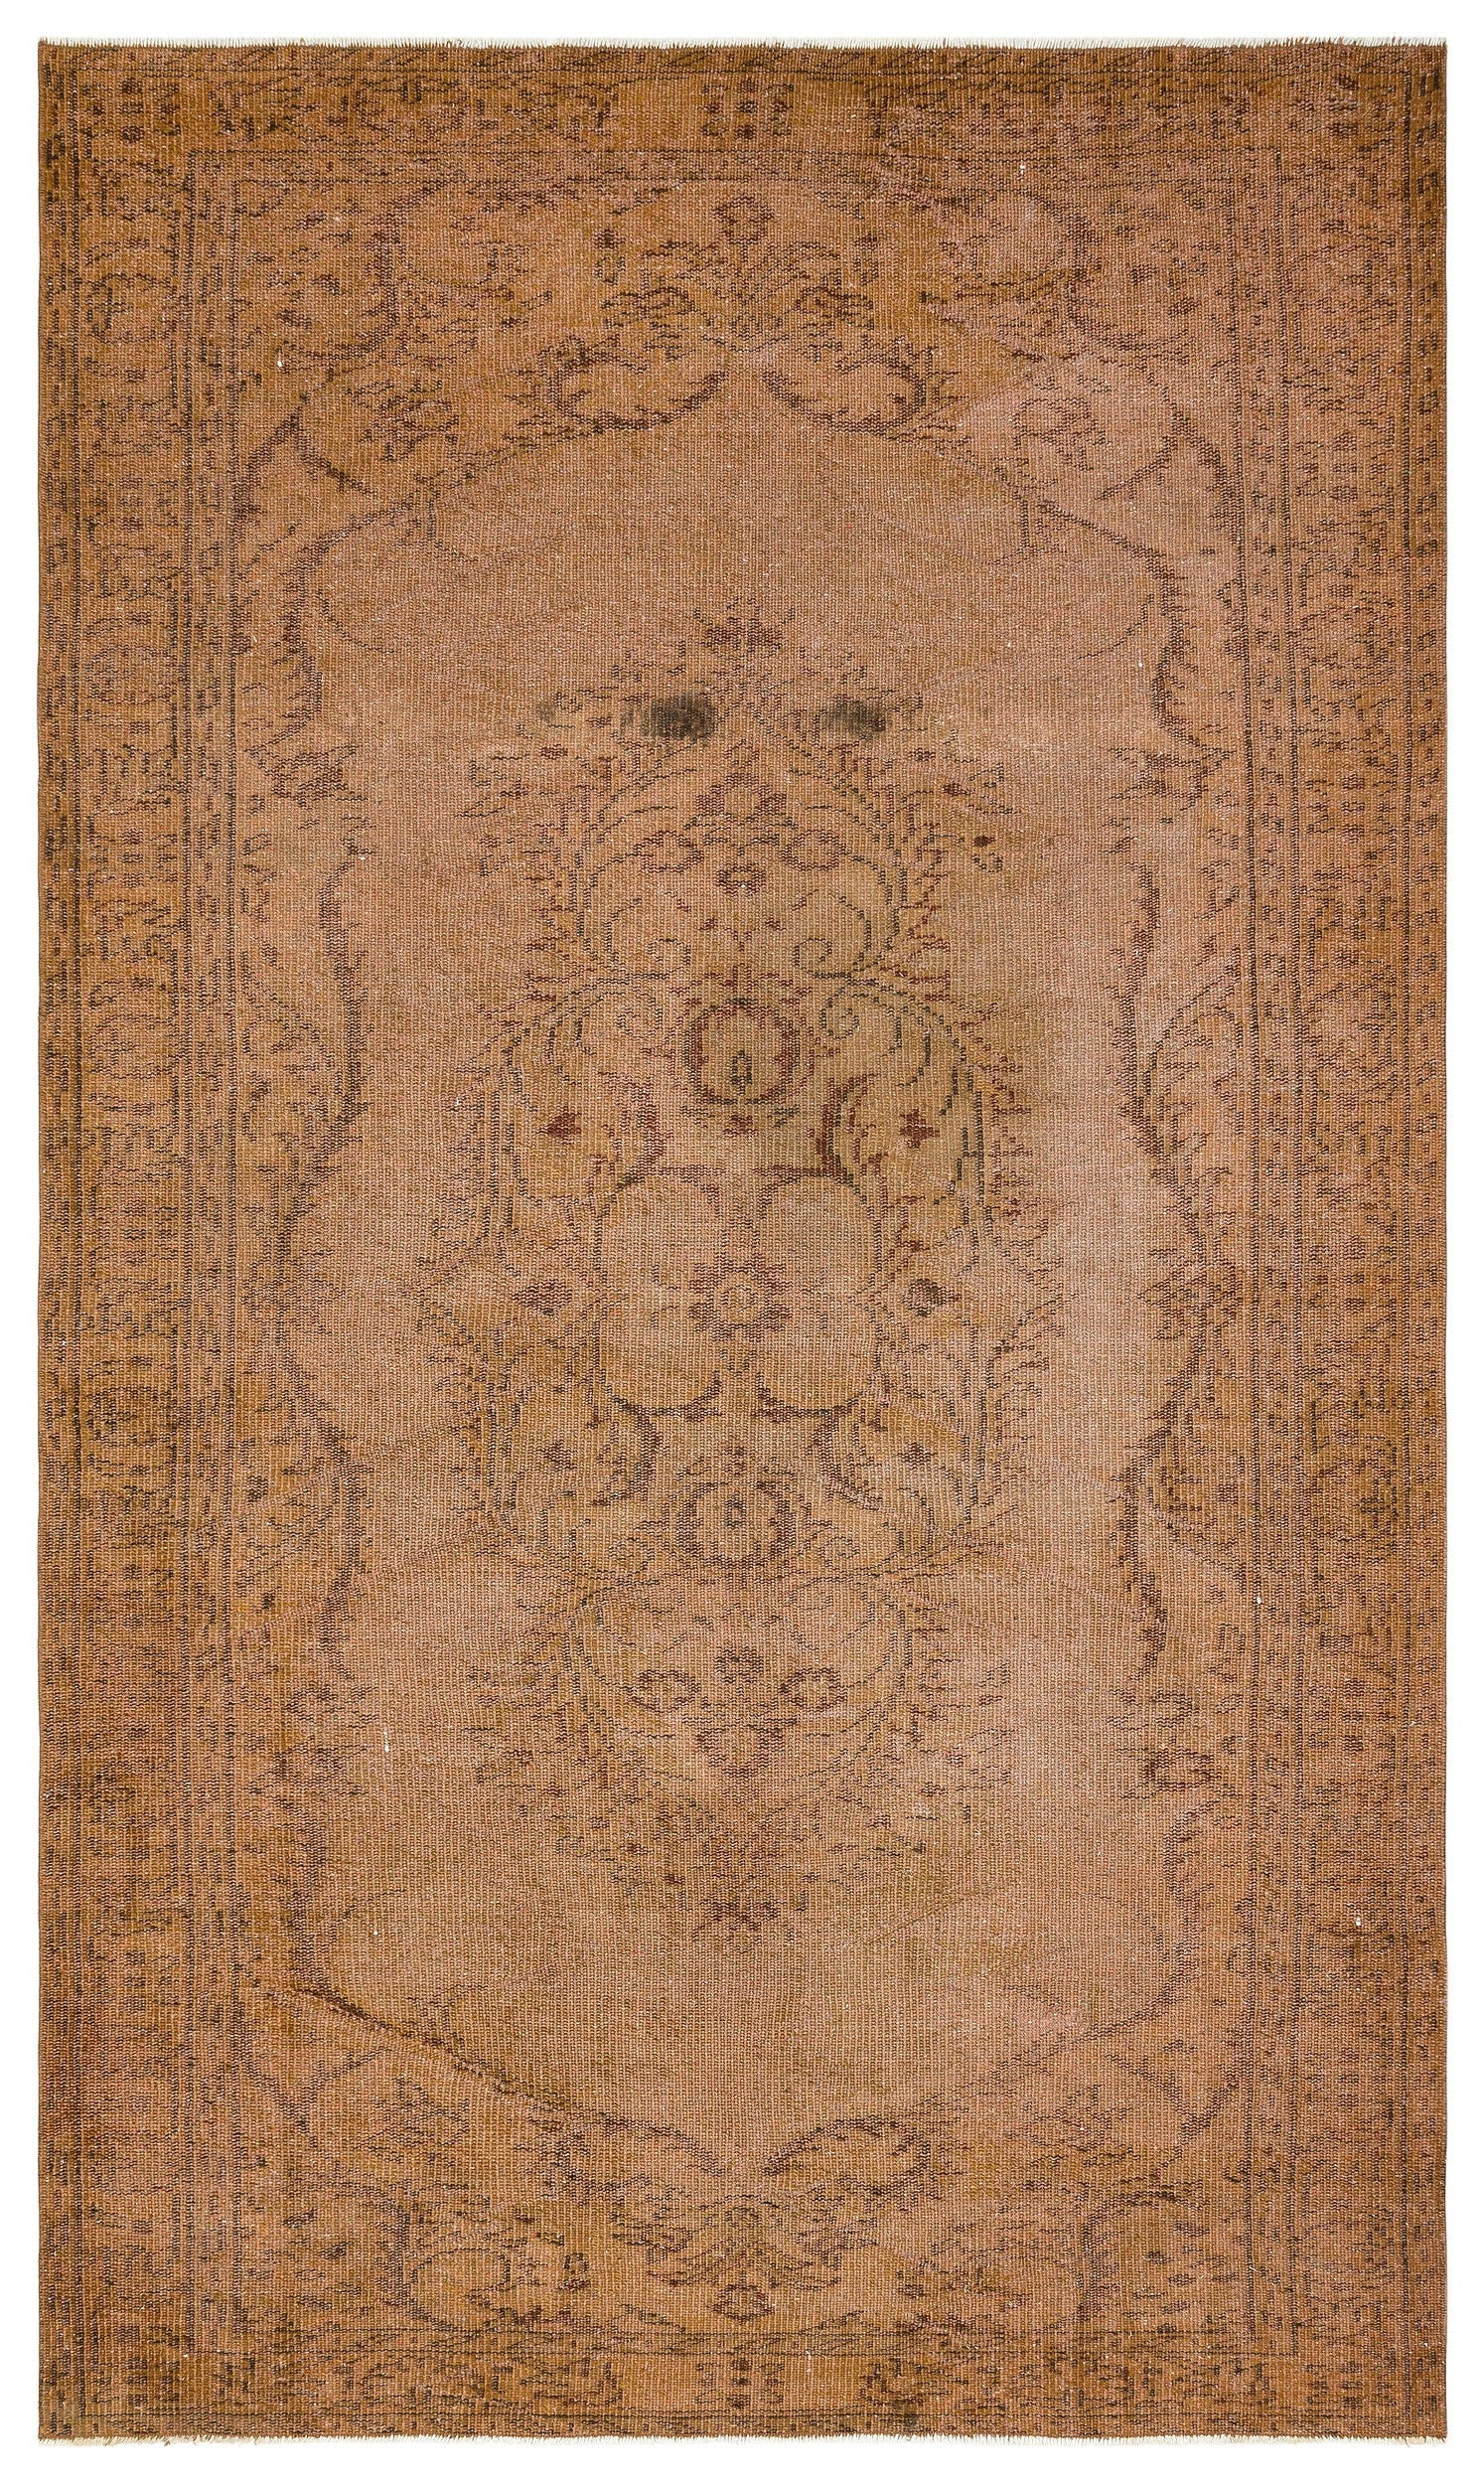 Brown Over Dyed Vintage Rug 5'7'' x 9'6'' ft 169 x 289 cm